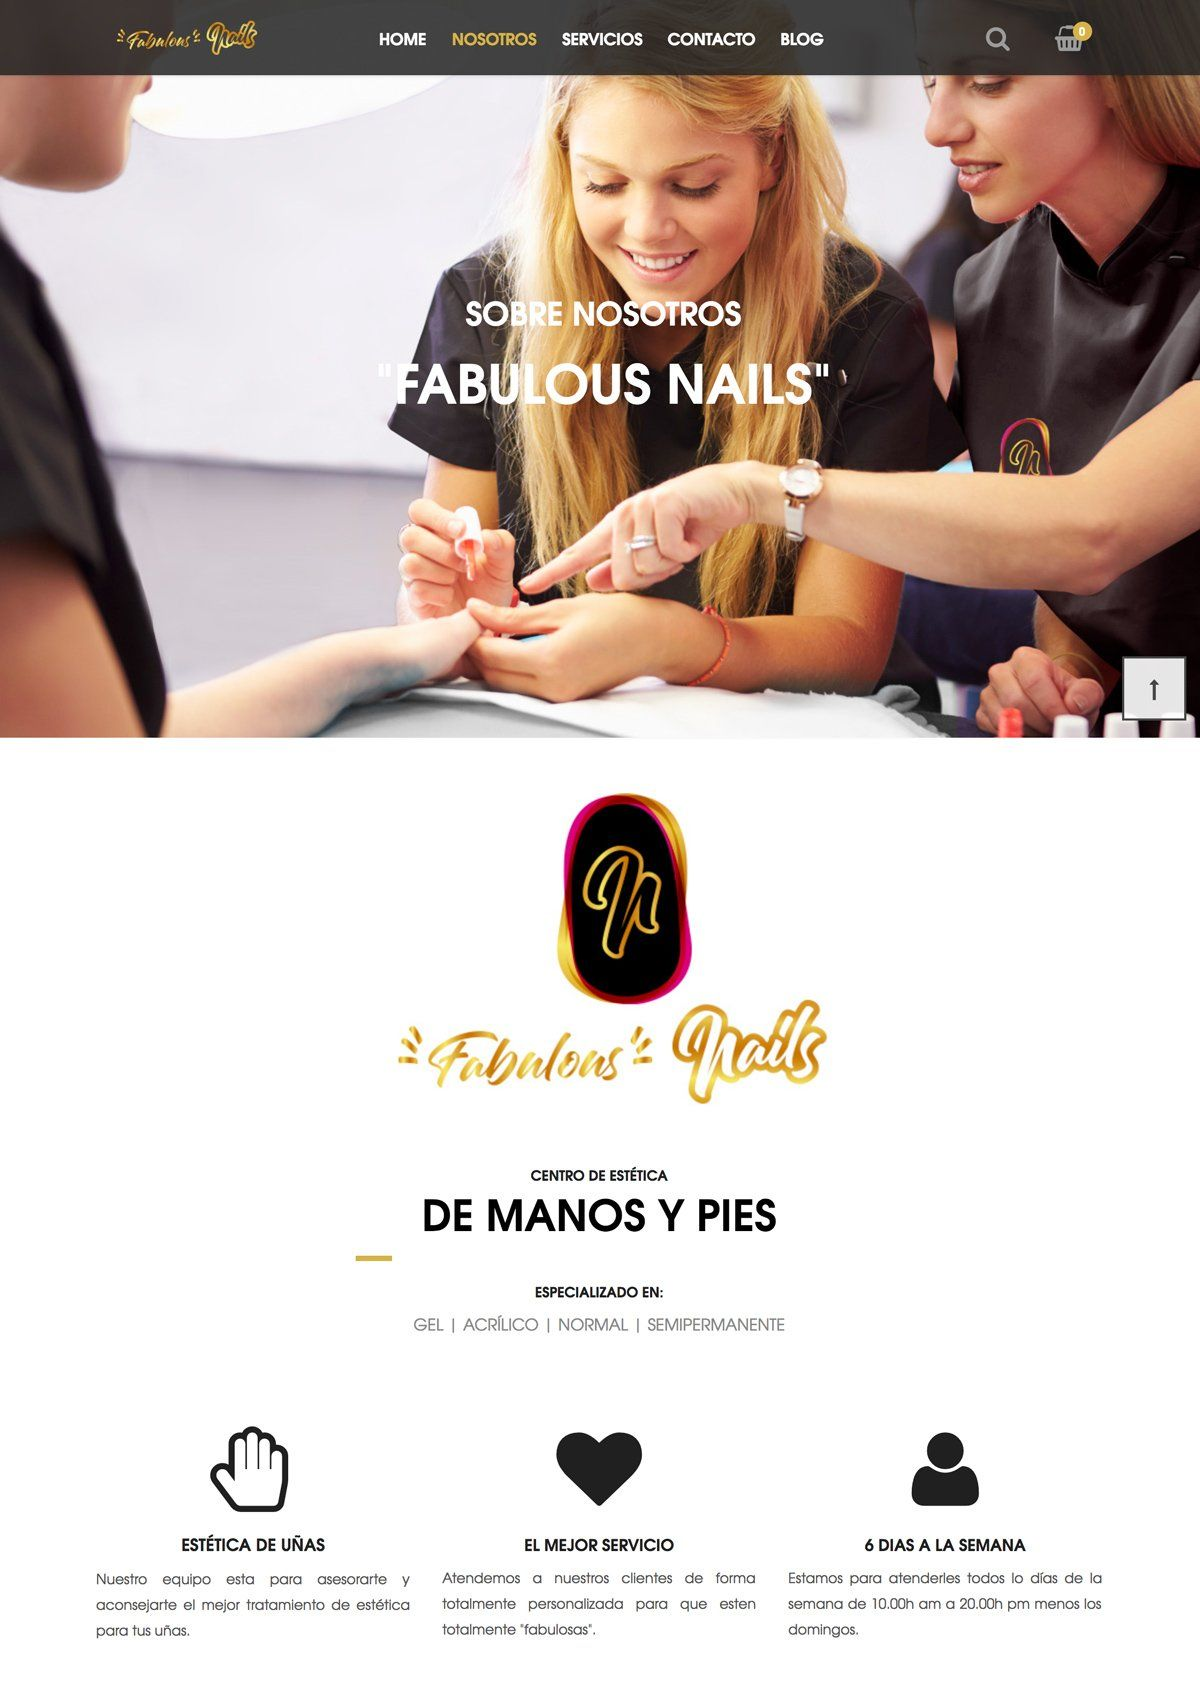 web-fabulousnails-alcobendas-diseno-estudio-creativo-madrid